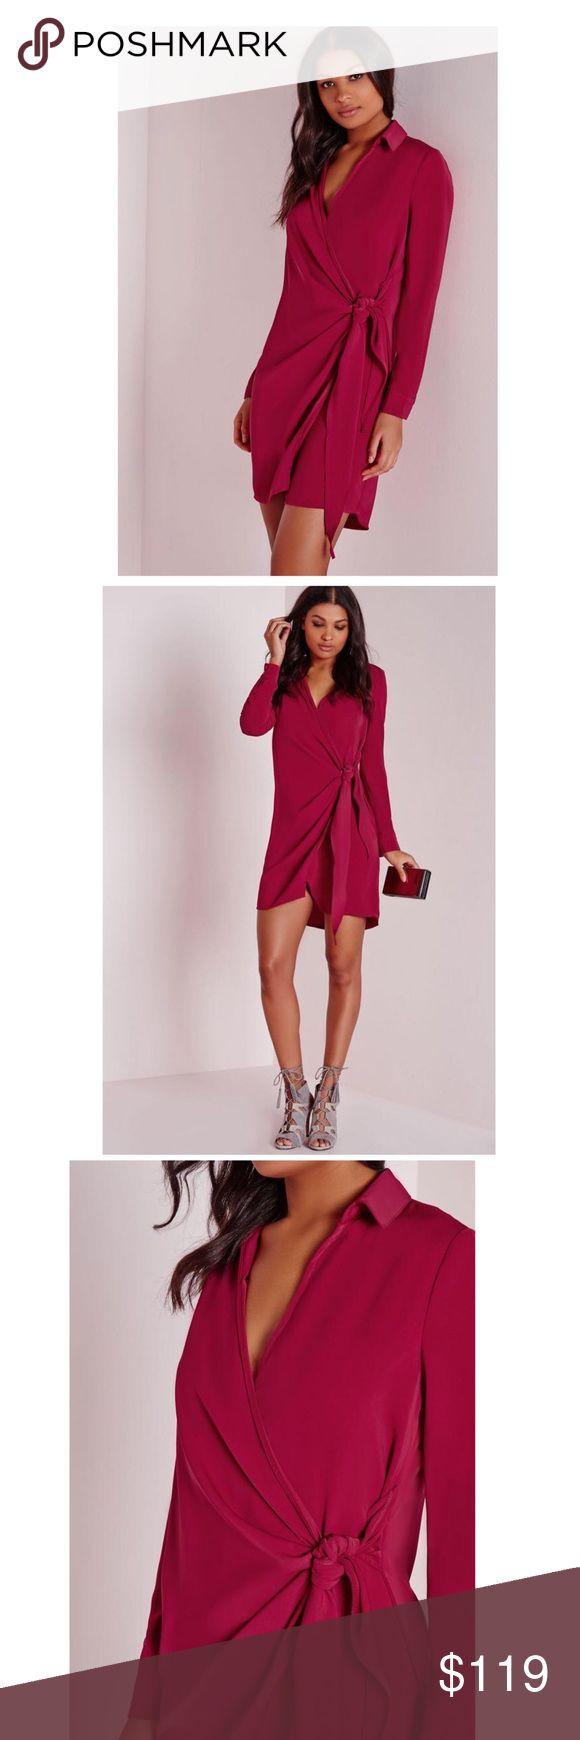 "🆕 Missguided UKCrepe wrap shirt dress/raspberry 🆕 Missguided UKCrepe wrap shirt dress/raspberry/Get the Look this Season in this totally fierce wrap over shirt dress/in a figure flattering luxe fabric in a killer raspberry hue with long sleeves and wrap tie front details this one will have you hot to trot. get that glamorous feel and team up with some barley there heels and a matching clutch for a sleek evening style. approx length 89cm/35"" /Material 95%Poloyester;5%Elastane/Model wears UK…"